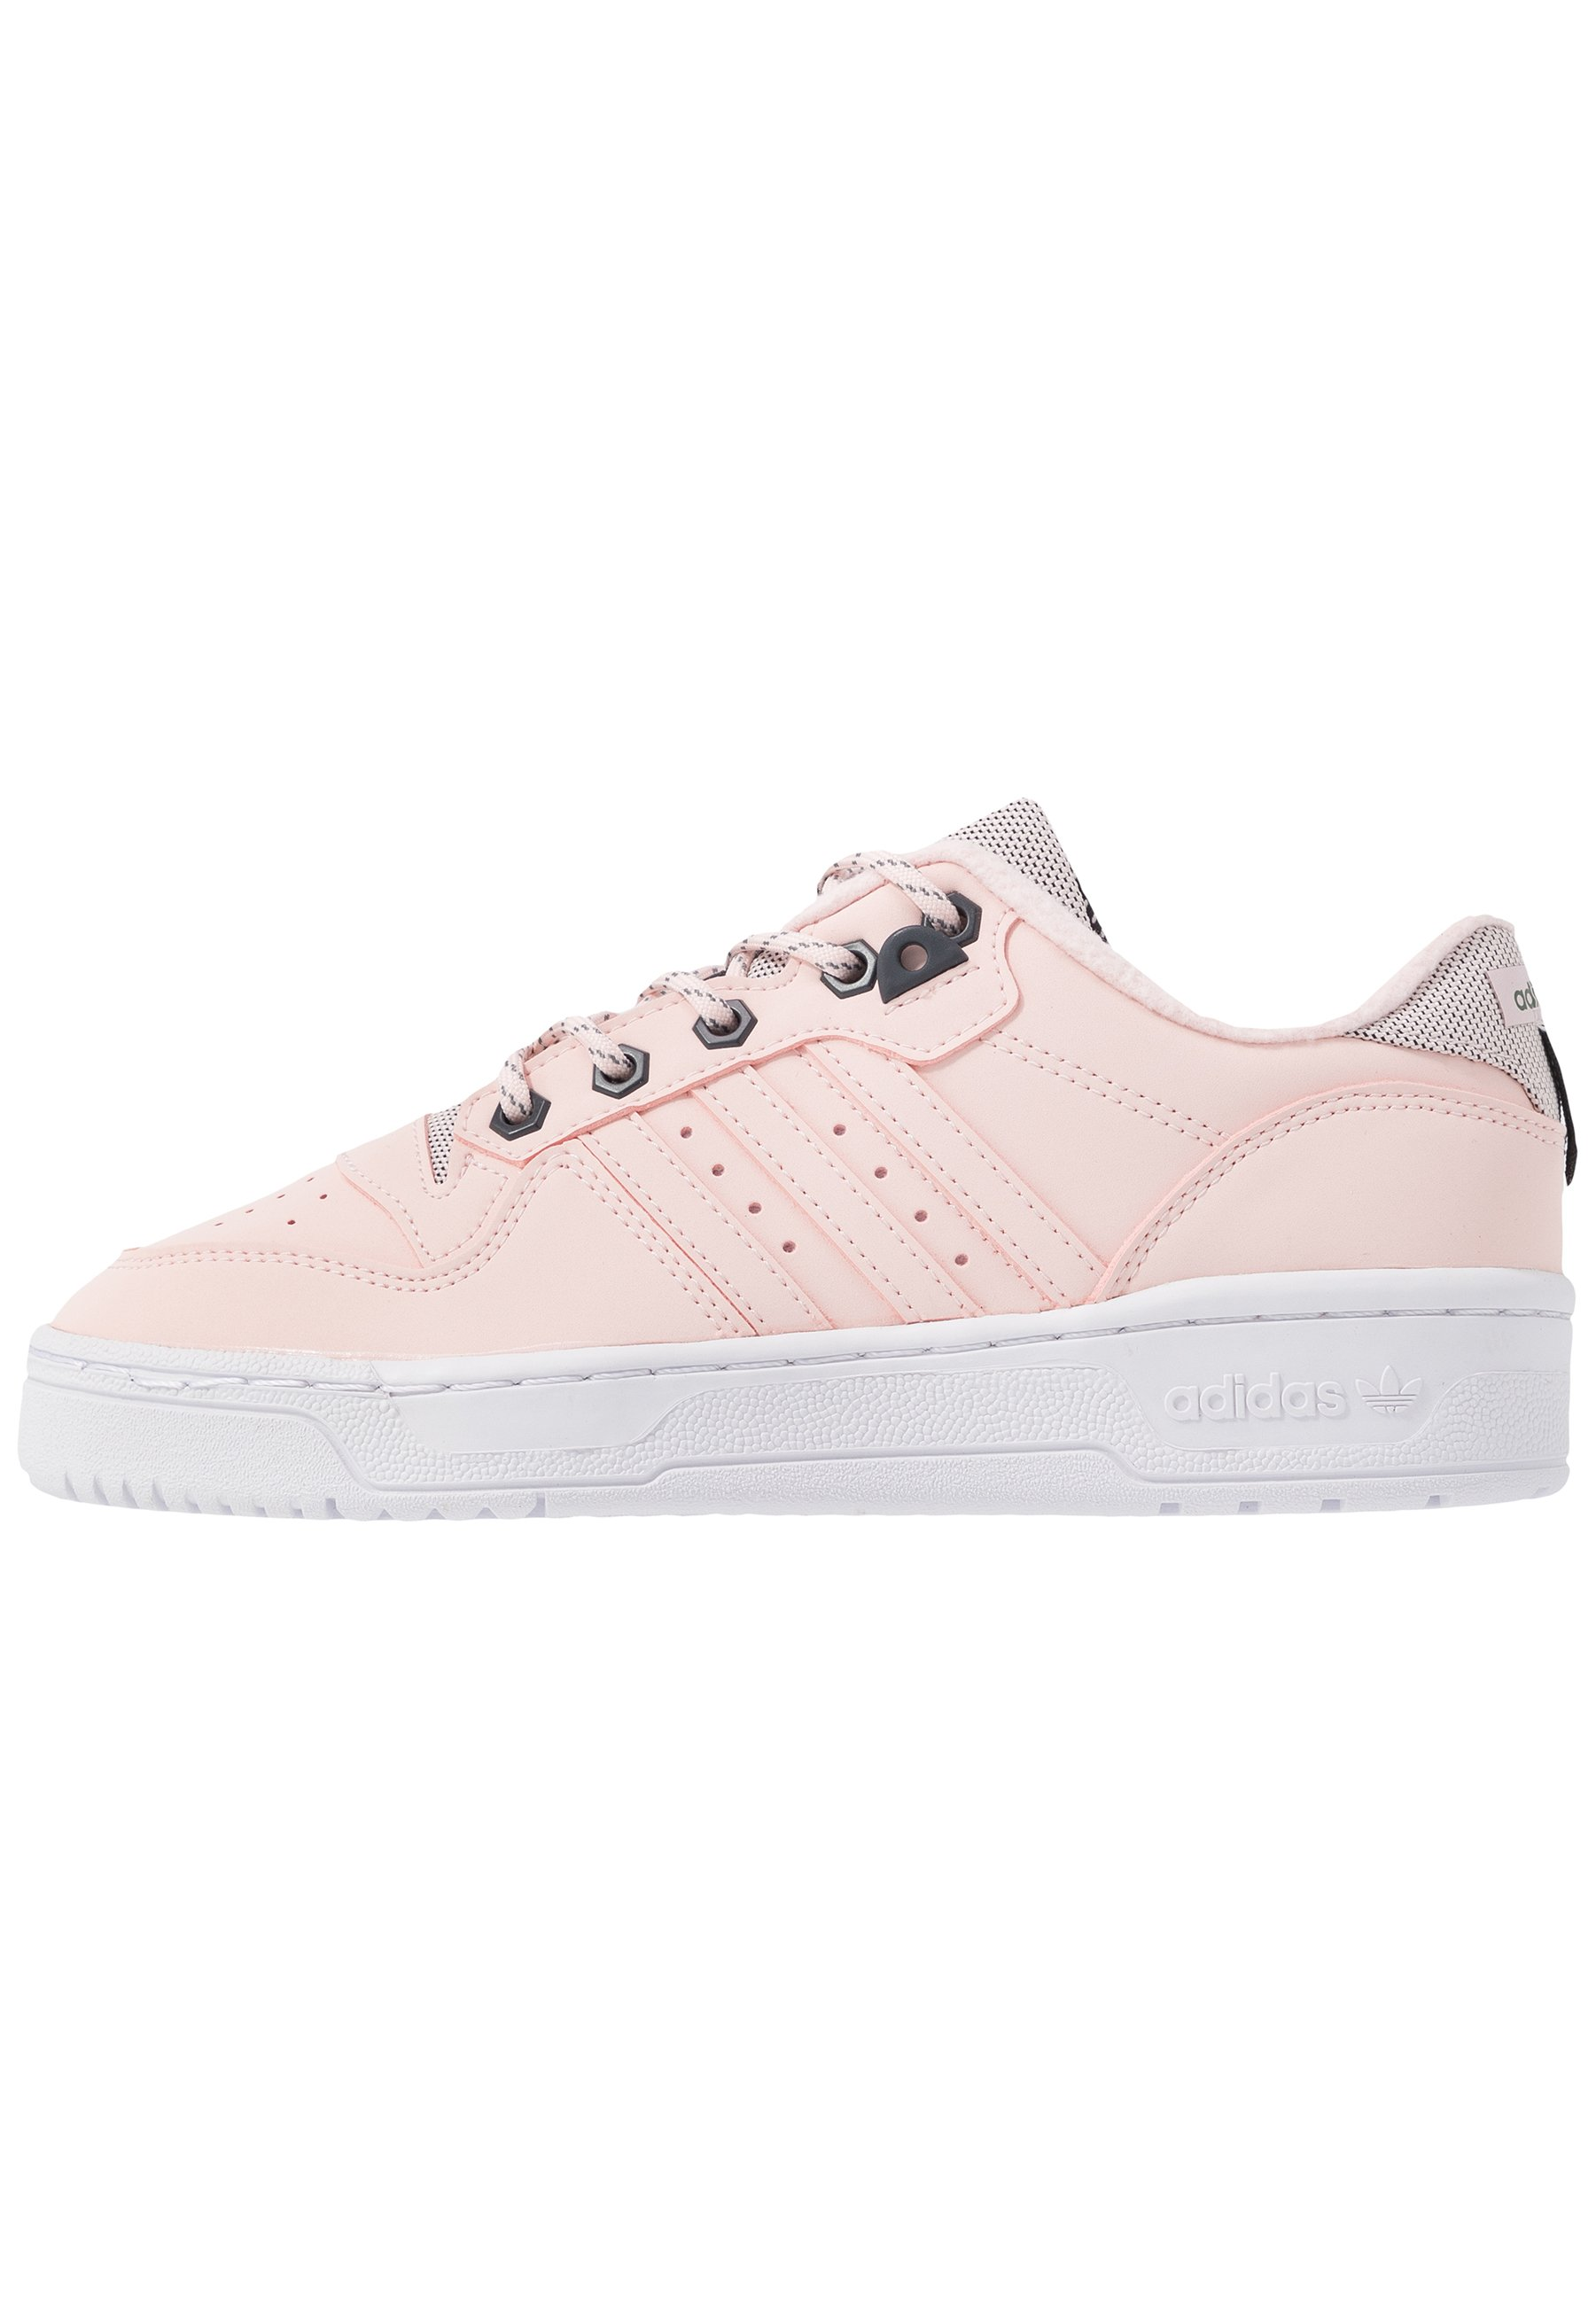 Womens Pale Pink adidas Adi Rivalry Low Trainers   schuh